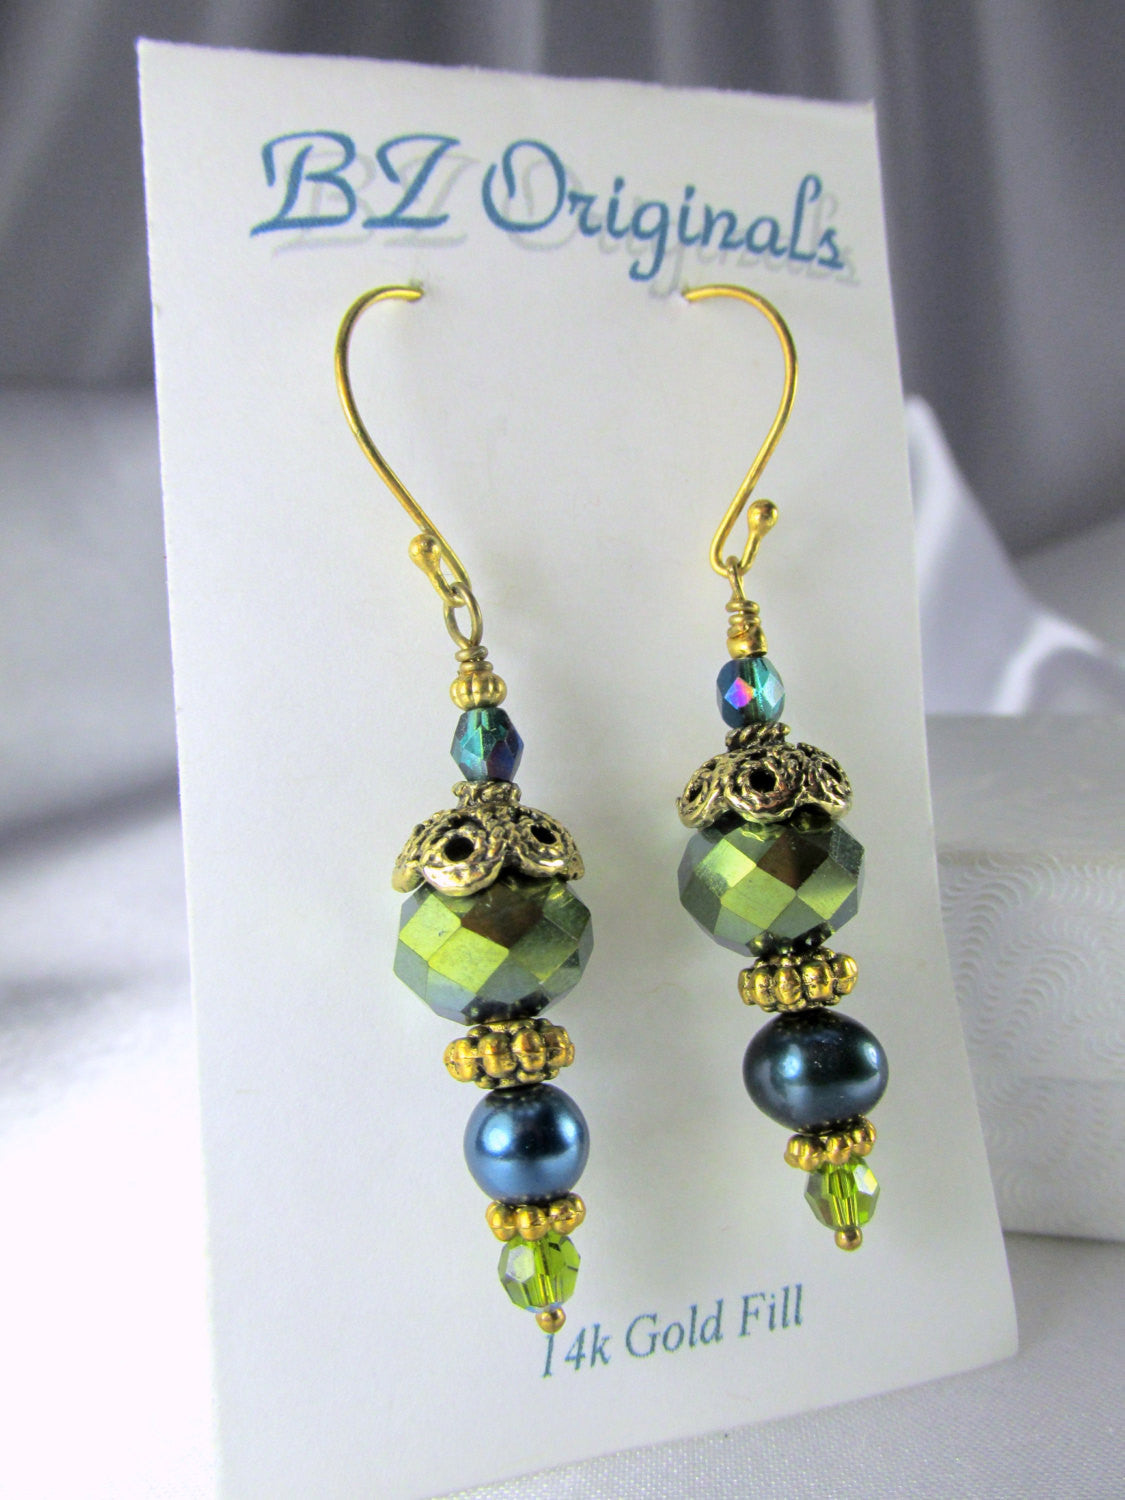 Teal and Green Pearl and Crystal Earrings on 14k gold fill wires - Odyssey Creations